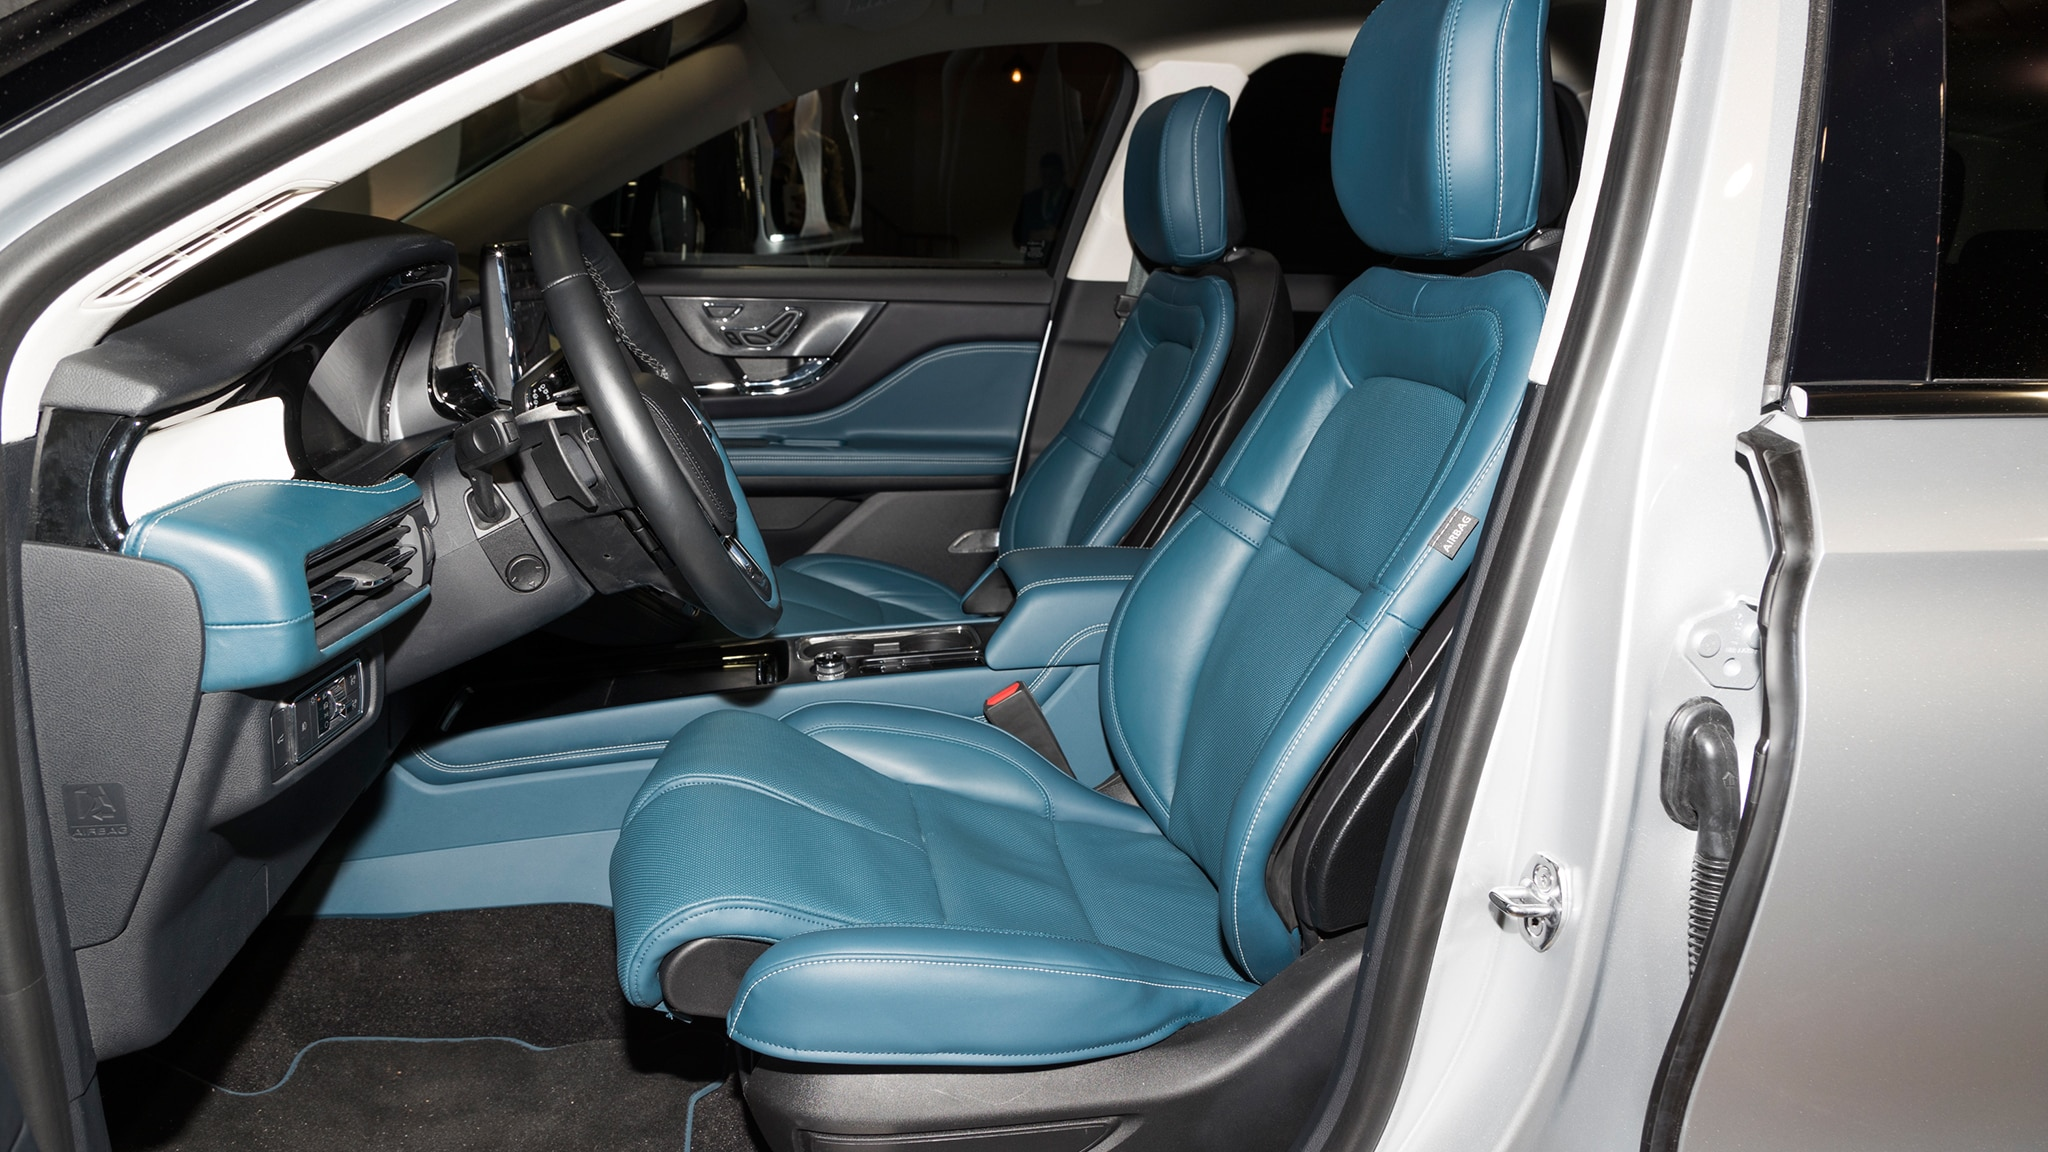 2020 Lincoln Corsair Interior, Hybrid, Price >> The 2020 Lincoln Corsair Arrives Looking Classy And